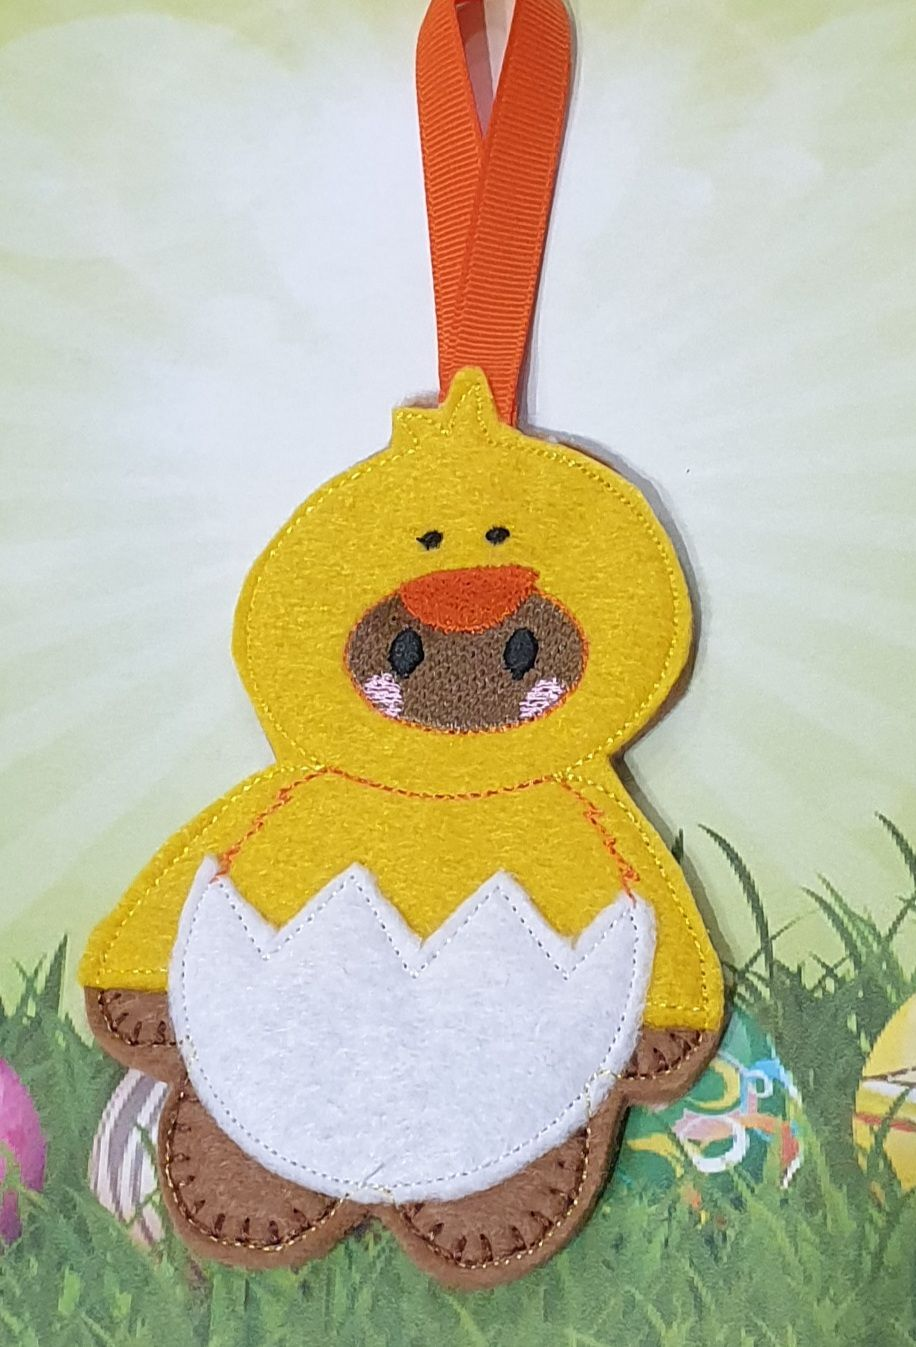 Dress up Chick Gingerbread